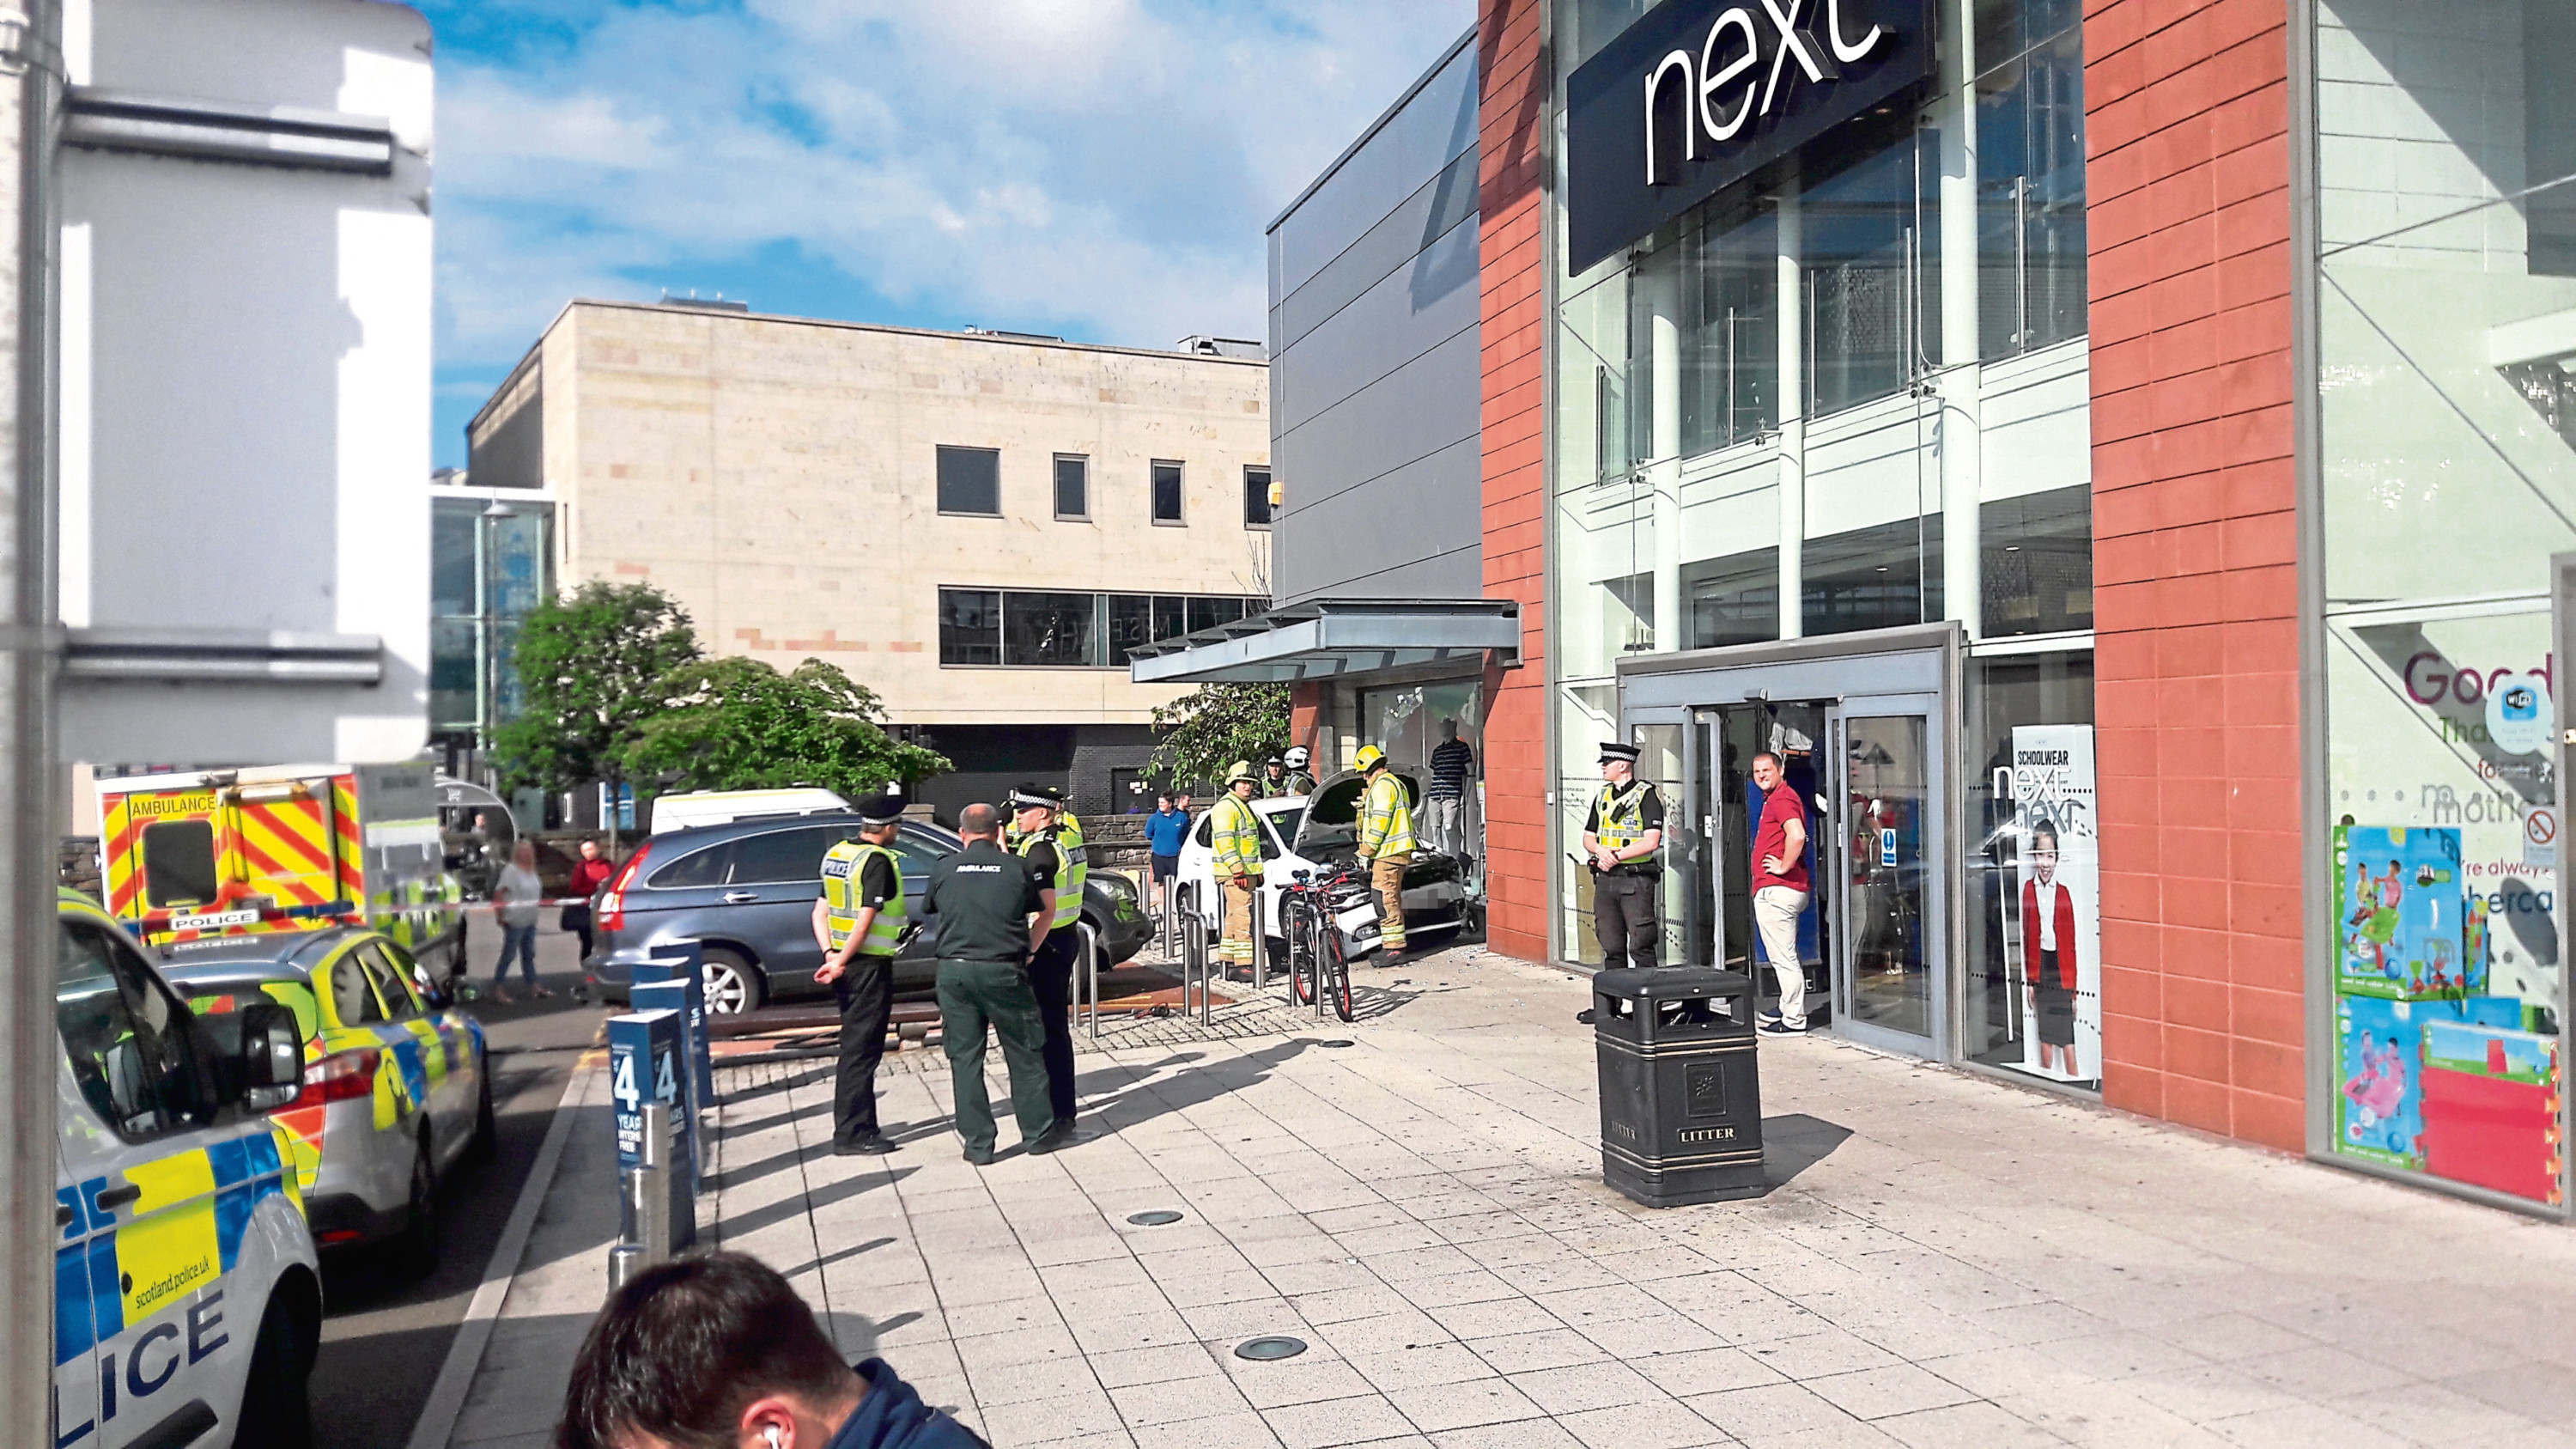 Scene of the crash at Next in the Gallagher Retail Park, Dundee